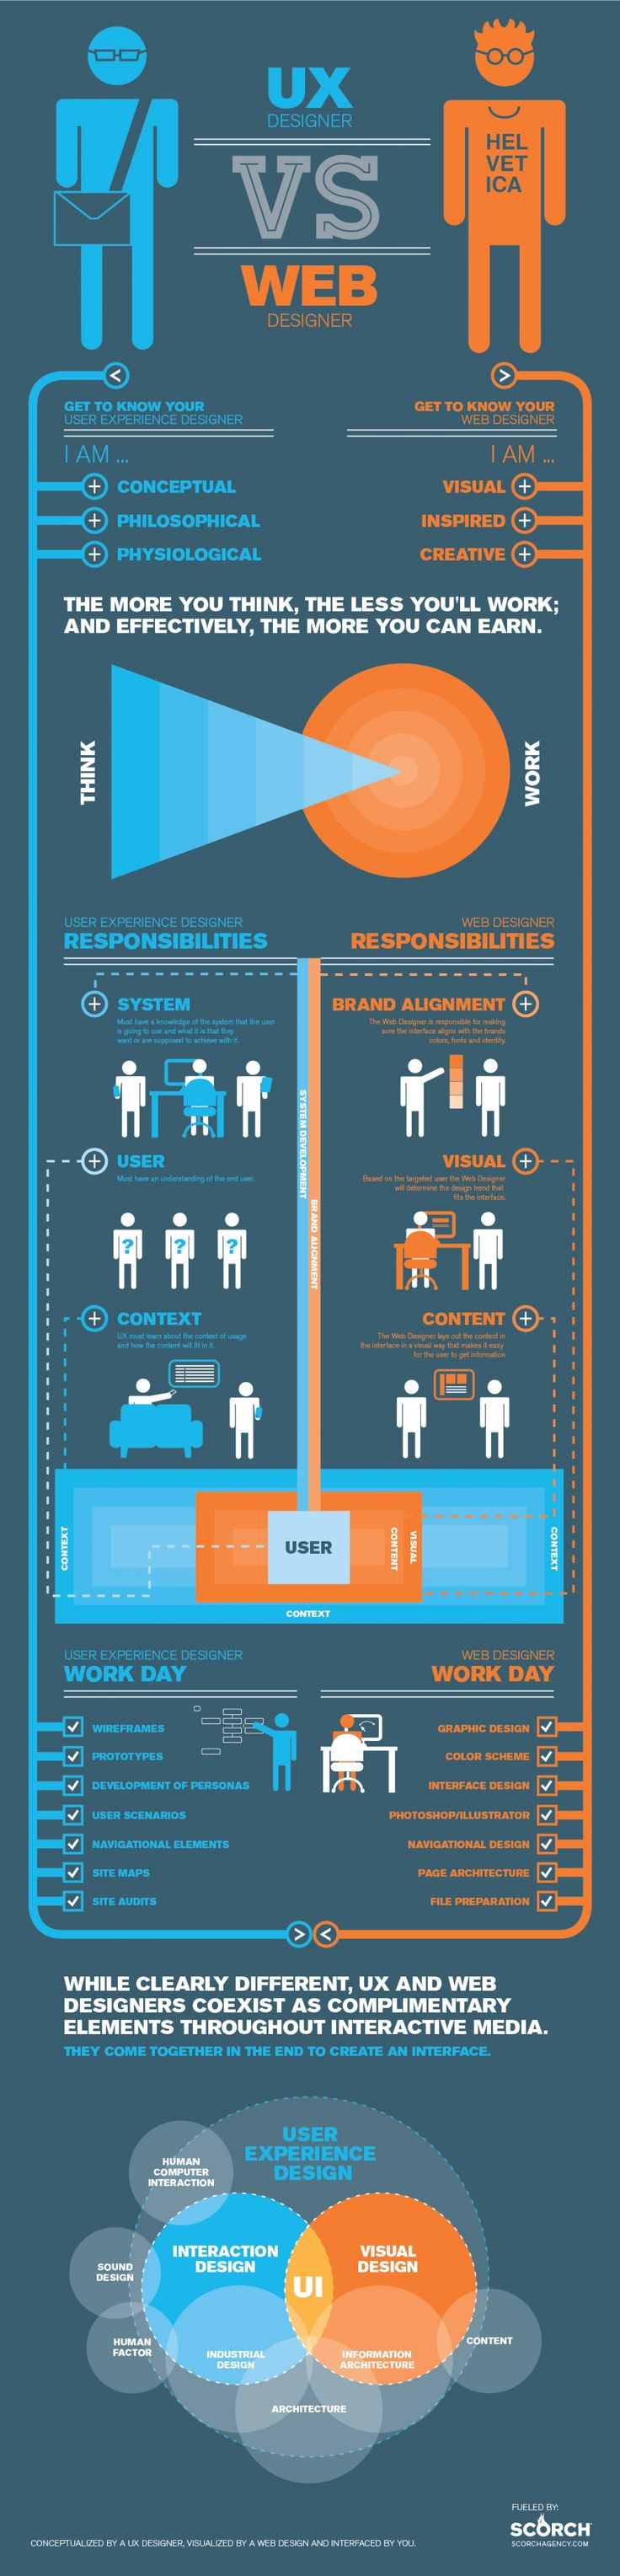 Another good infographic outlining key roles of a UX designer.